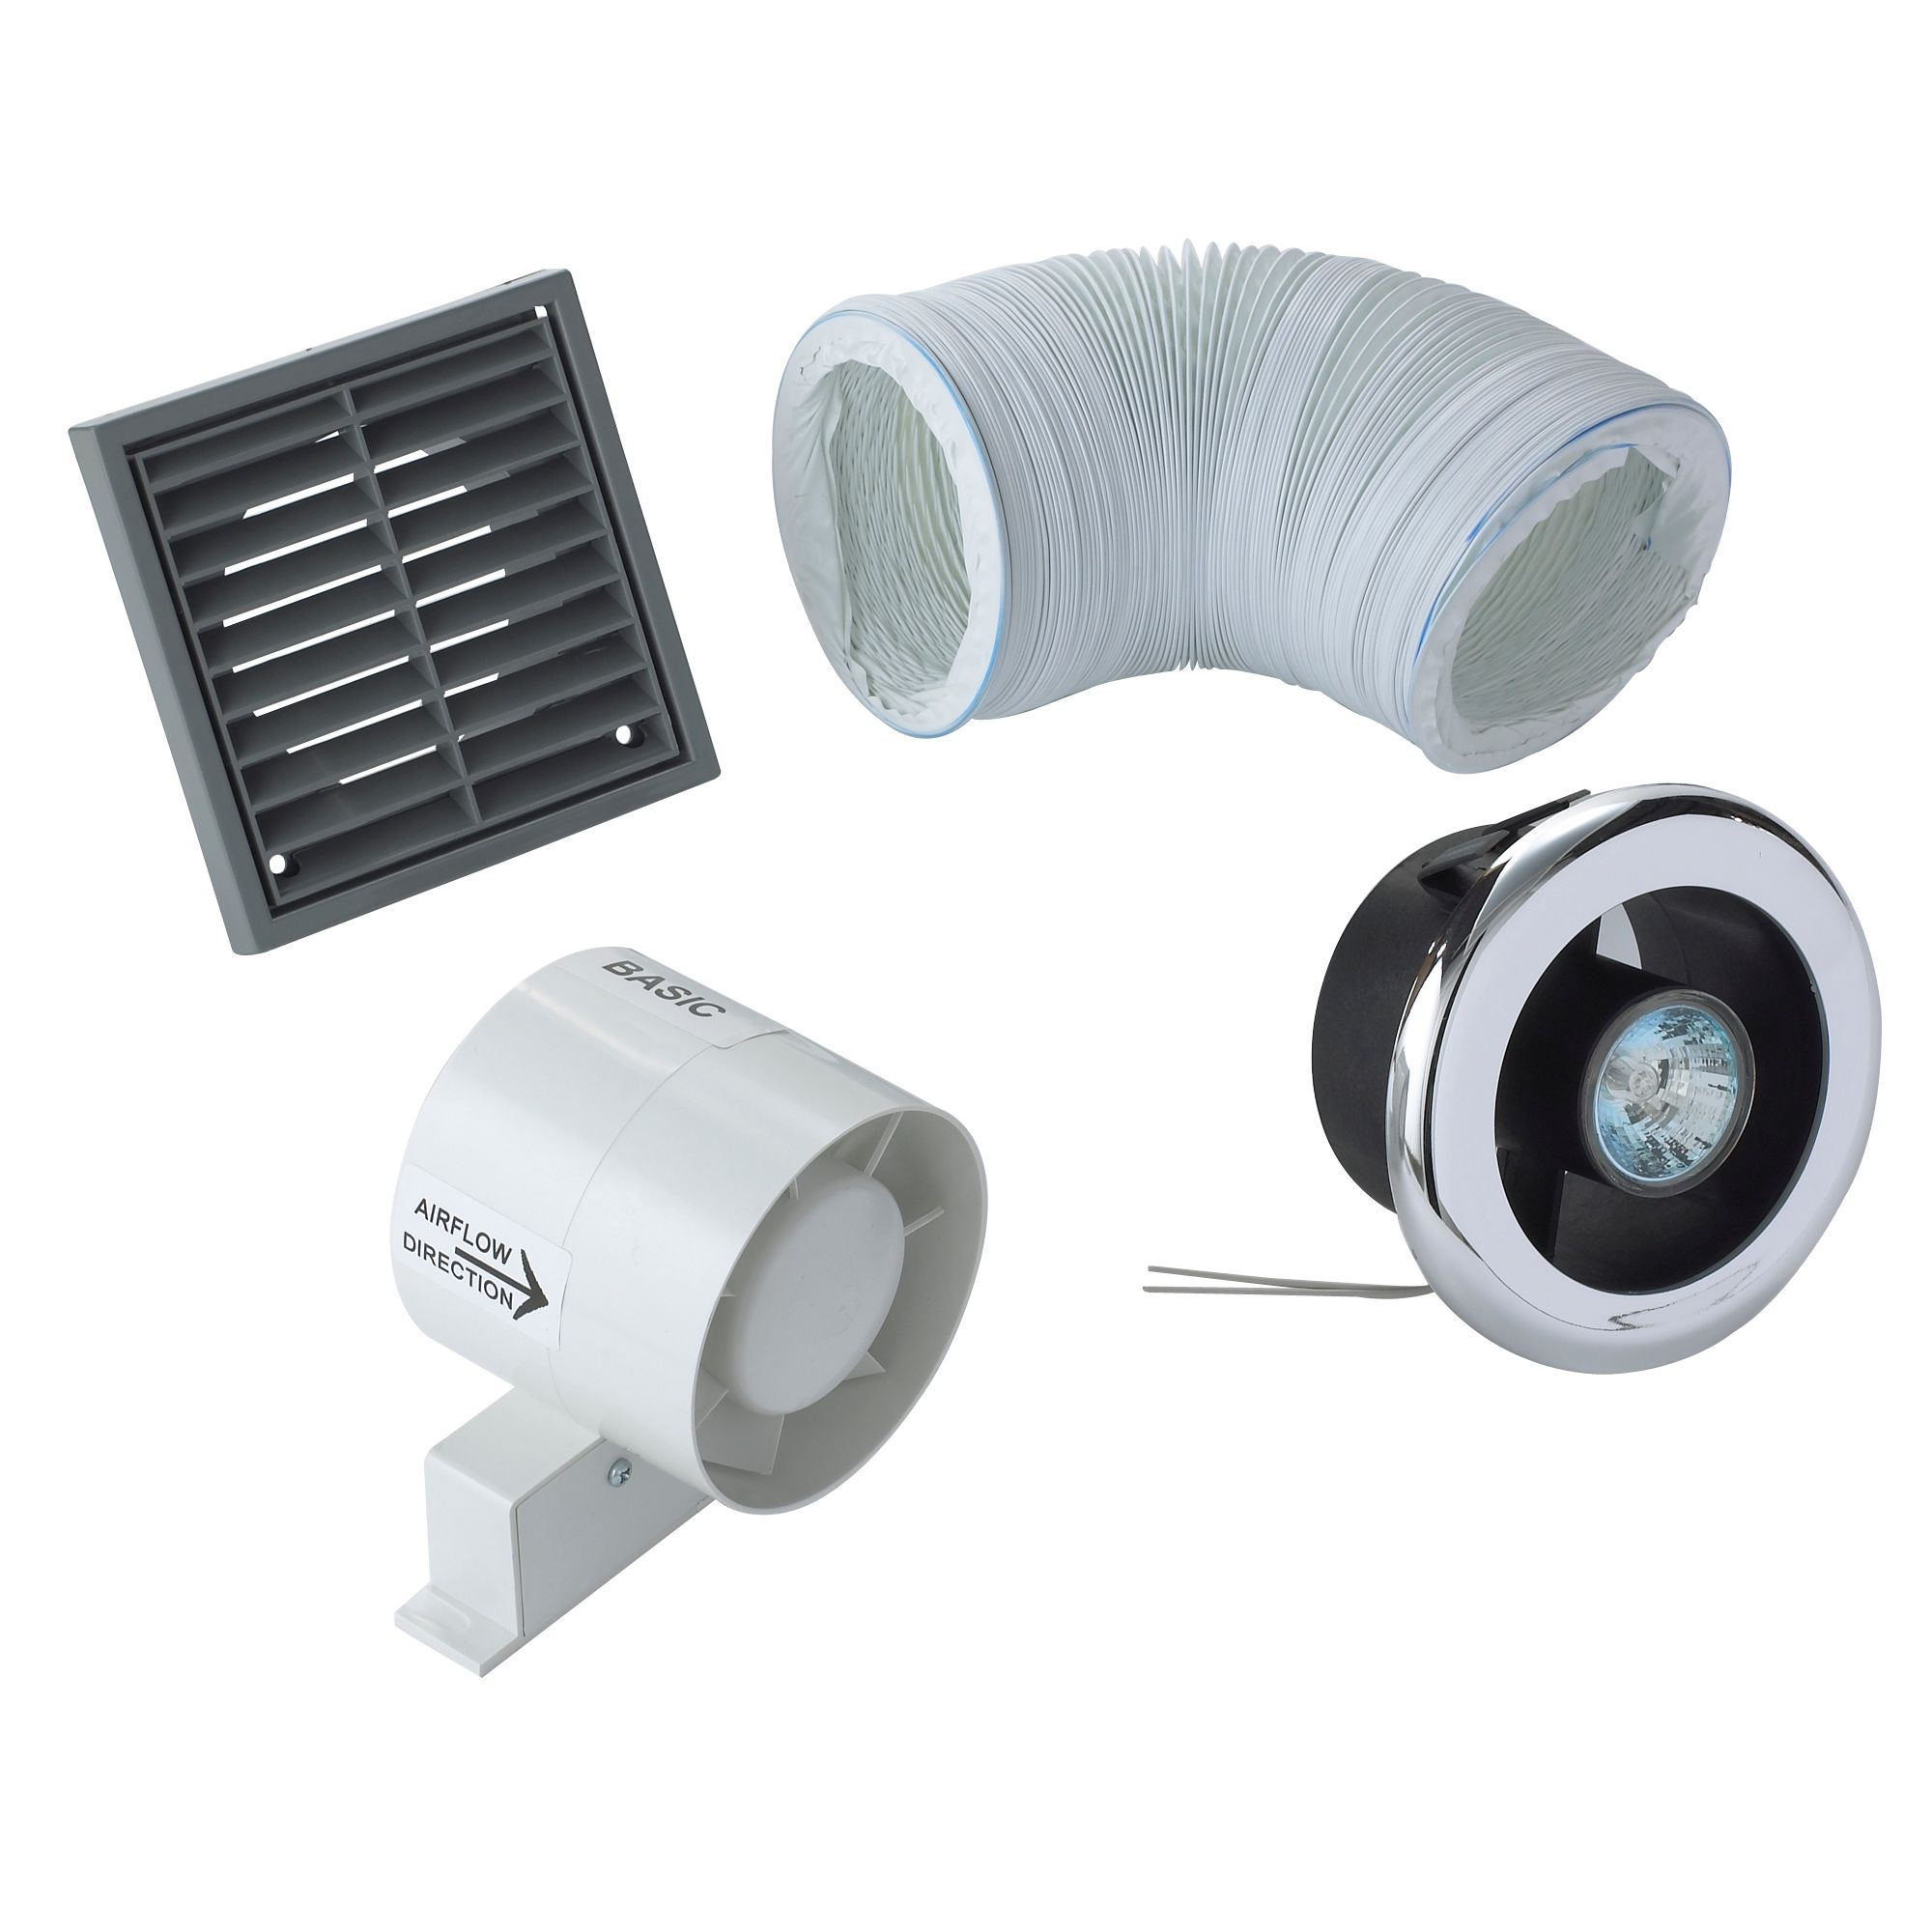 Bathroom Extractor Fan manrose vdisl100s shower light bathroom extractor fan kit (d)98mm